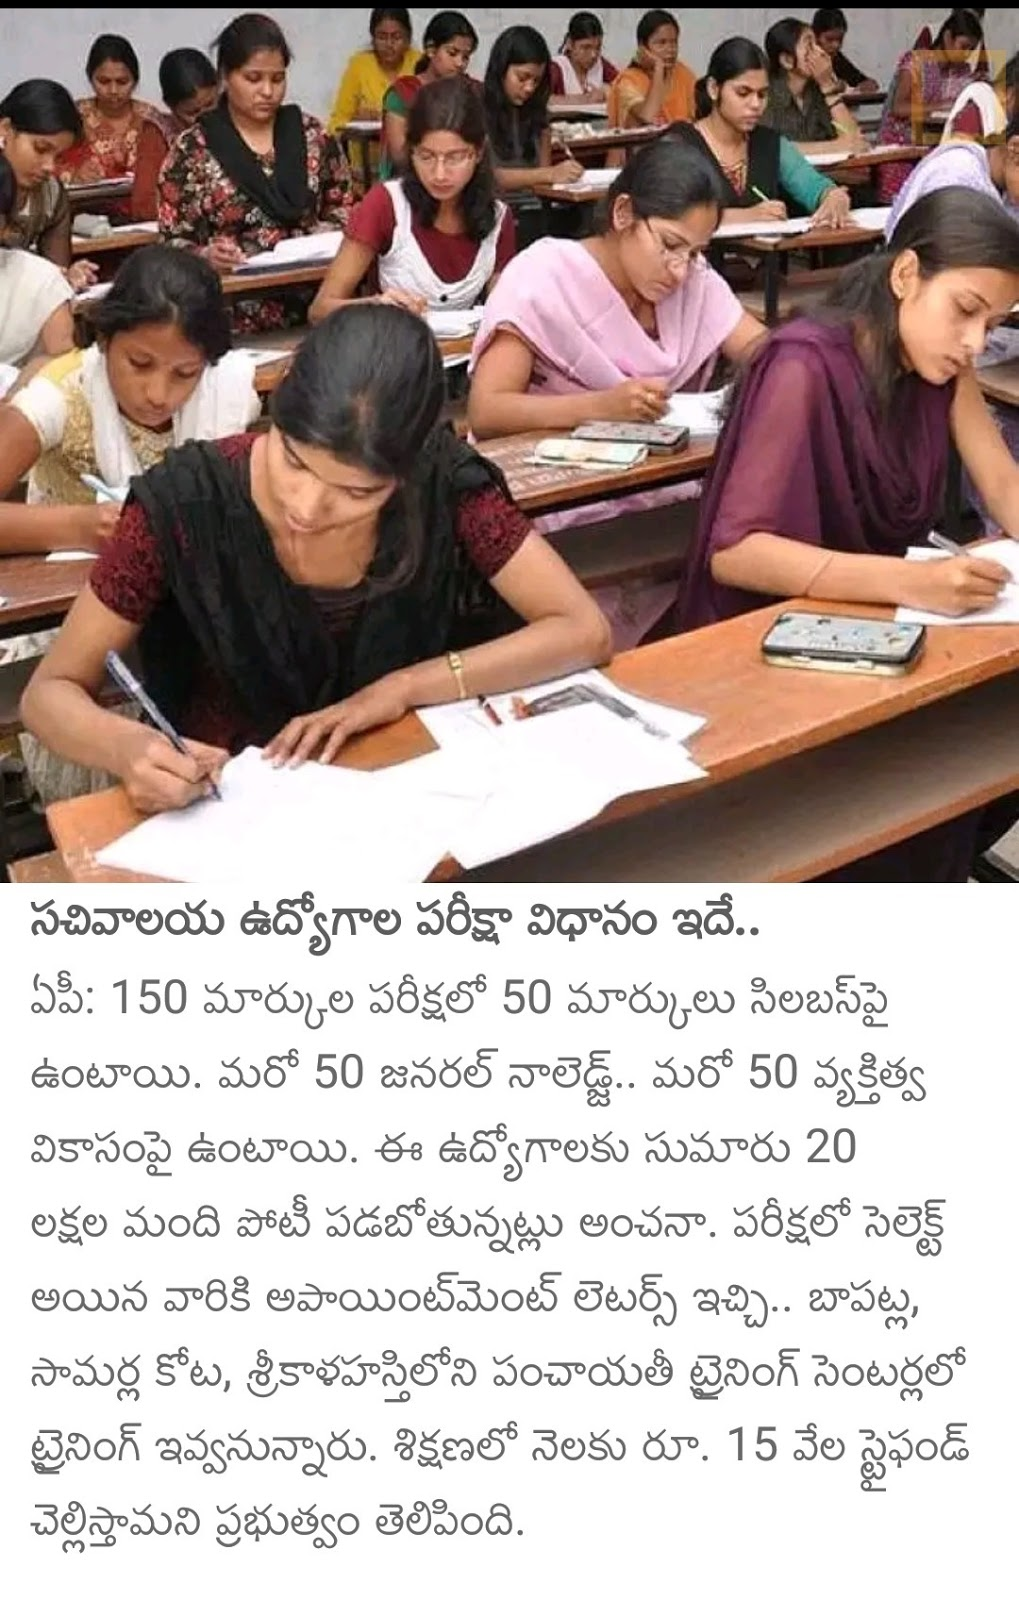 Andhra Pradesh Grama Sachivalayam filling various vacancy posts Exam Pattern Syllabus. AP Govt initiated to establish Grama Sachivalayams for every 2000 population.